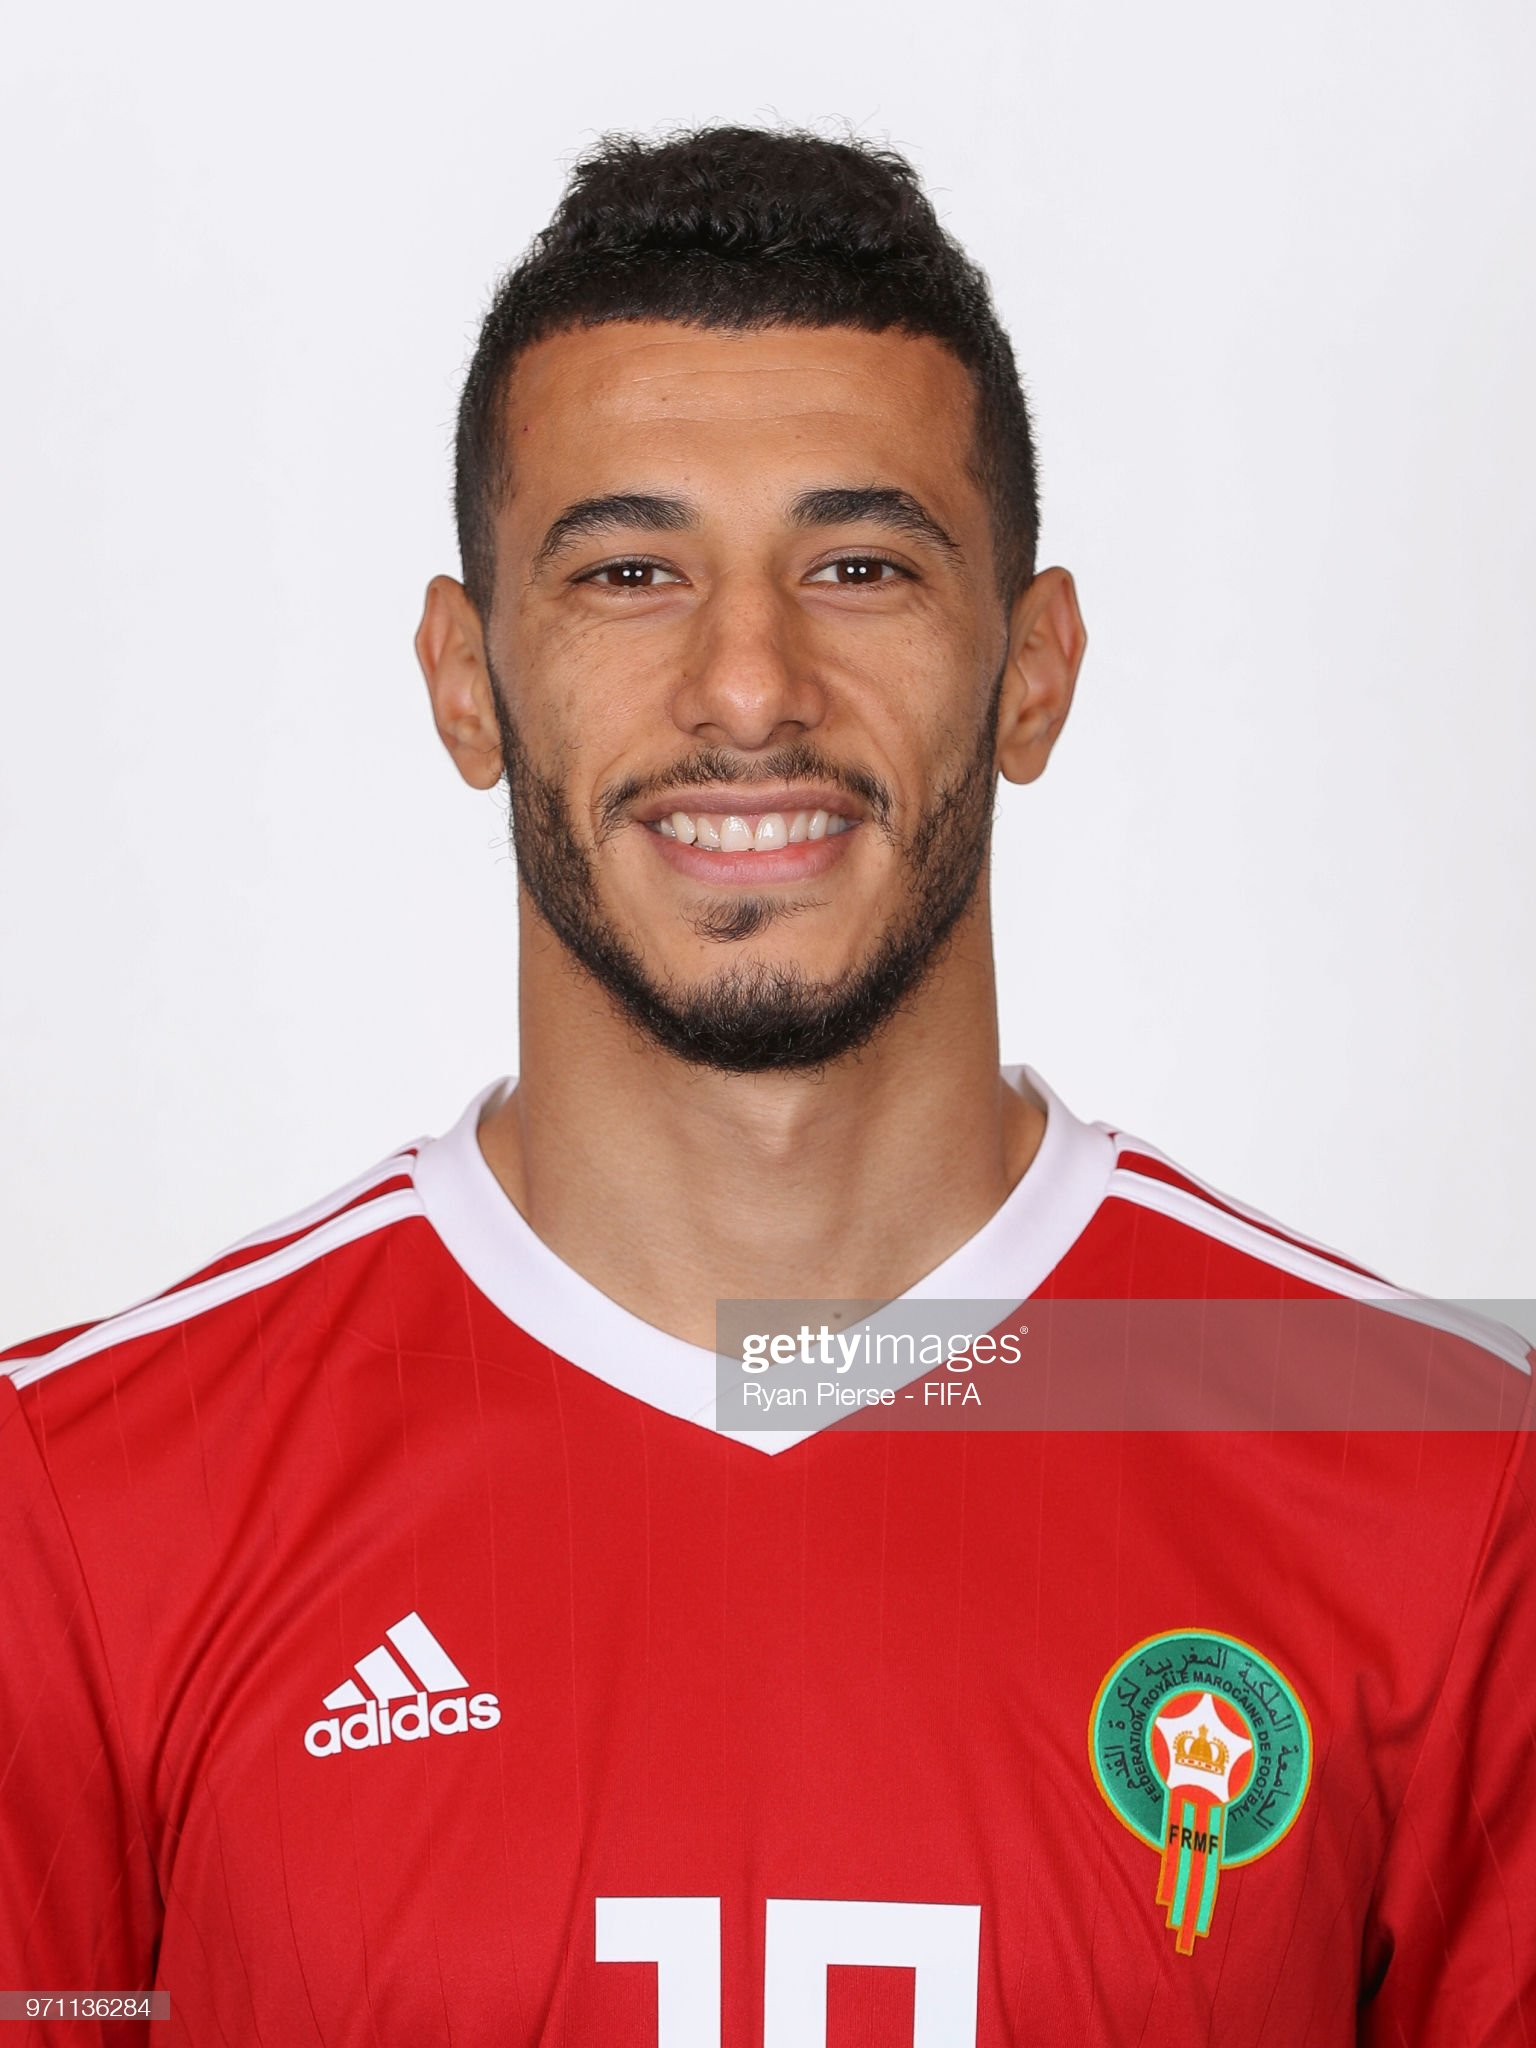 Norteafricanos Younes-belhanda-of-morocco-poses-during-the-official-fifa-world-cup-picture-id971136284?s=2048x2048